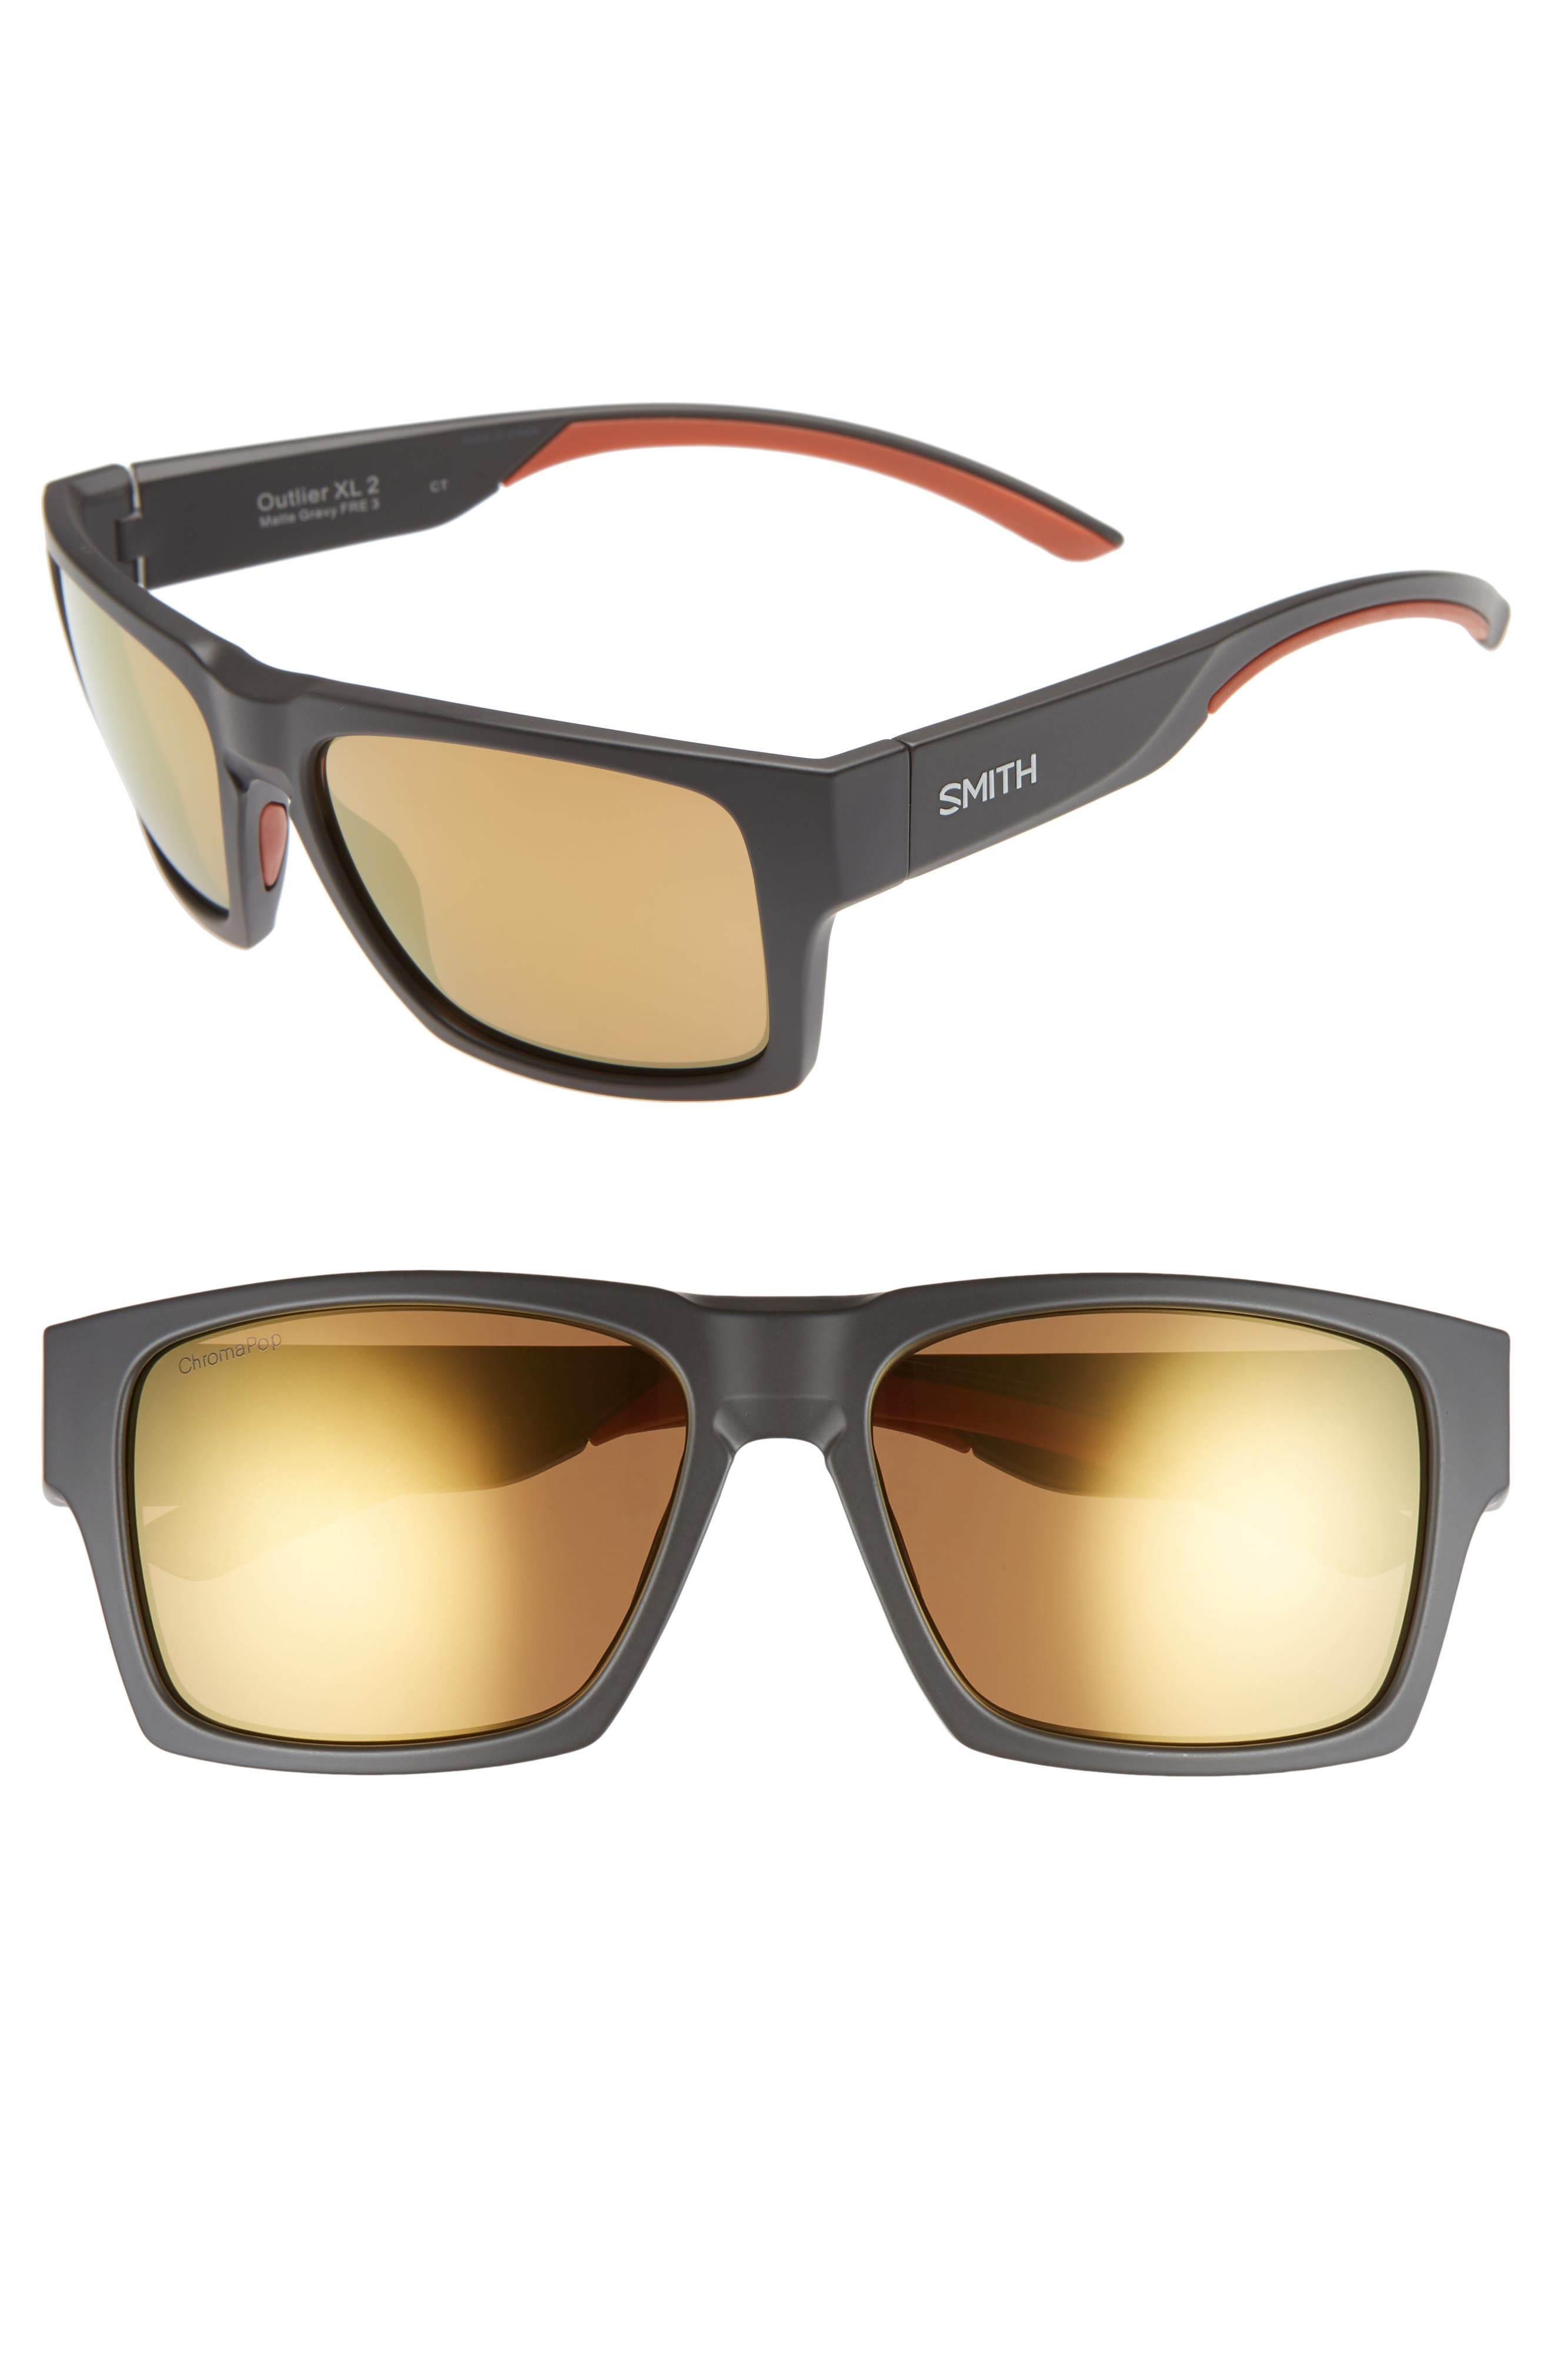 SMITH OUTLIER 2XL 59MM POLARIZED SUNGLASSES - MATTE GRAVY